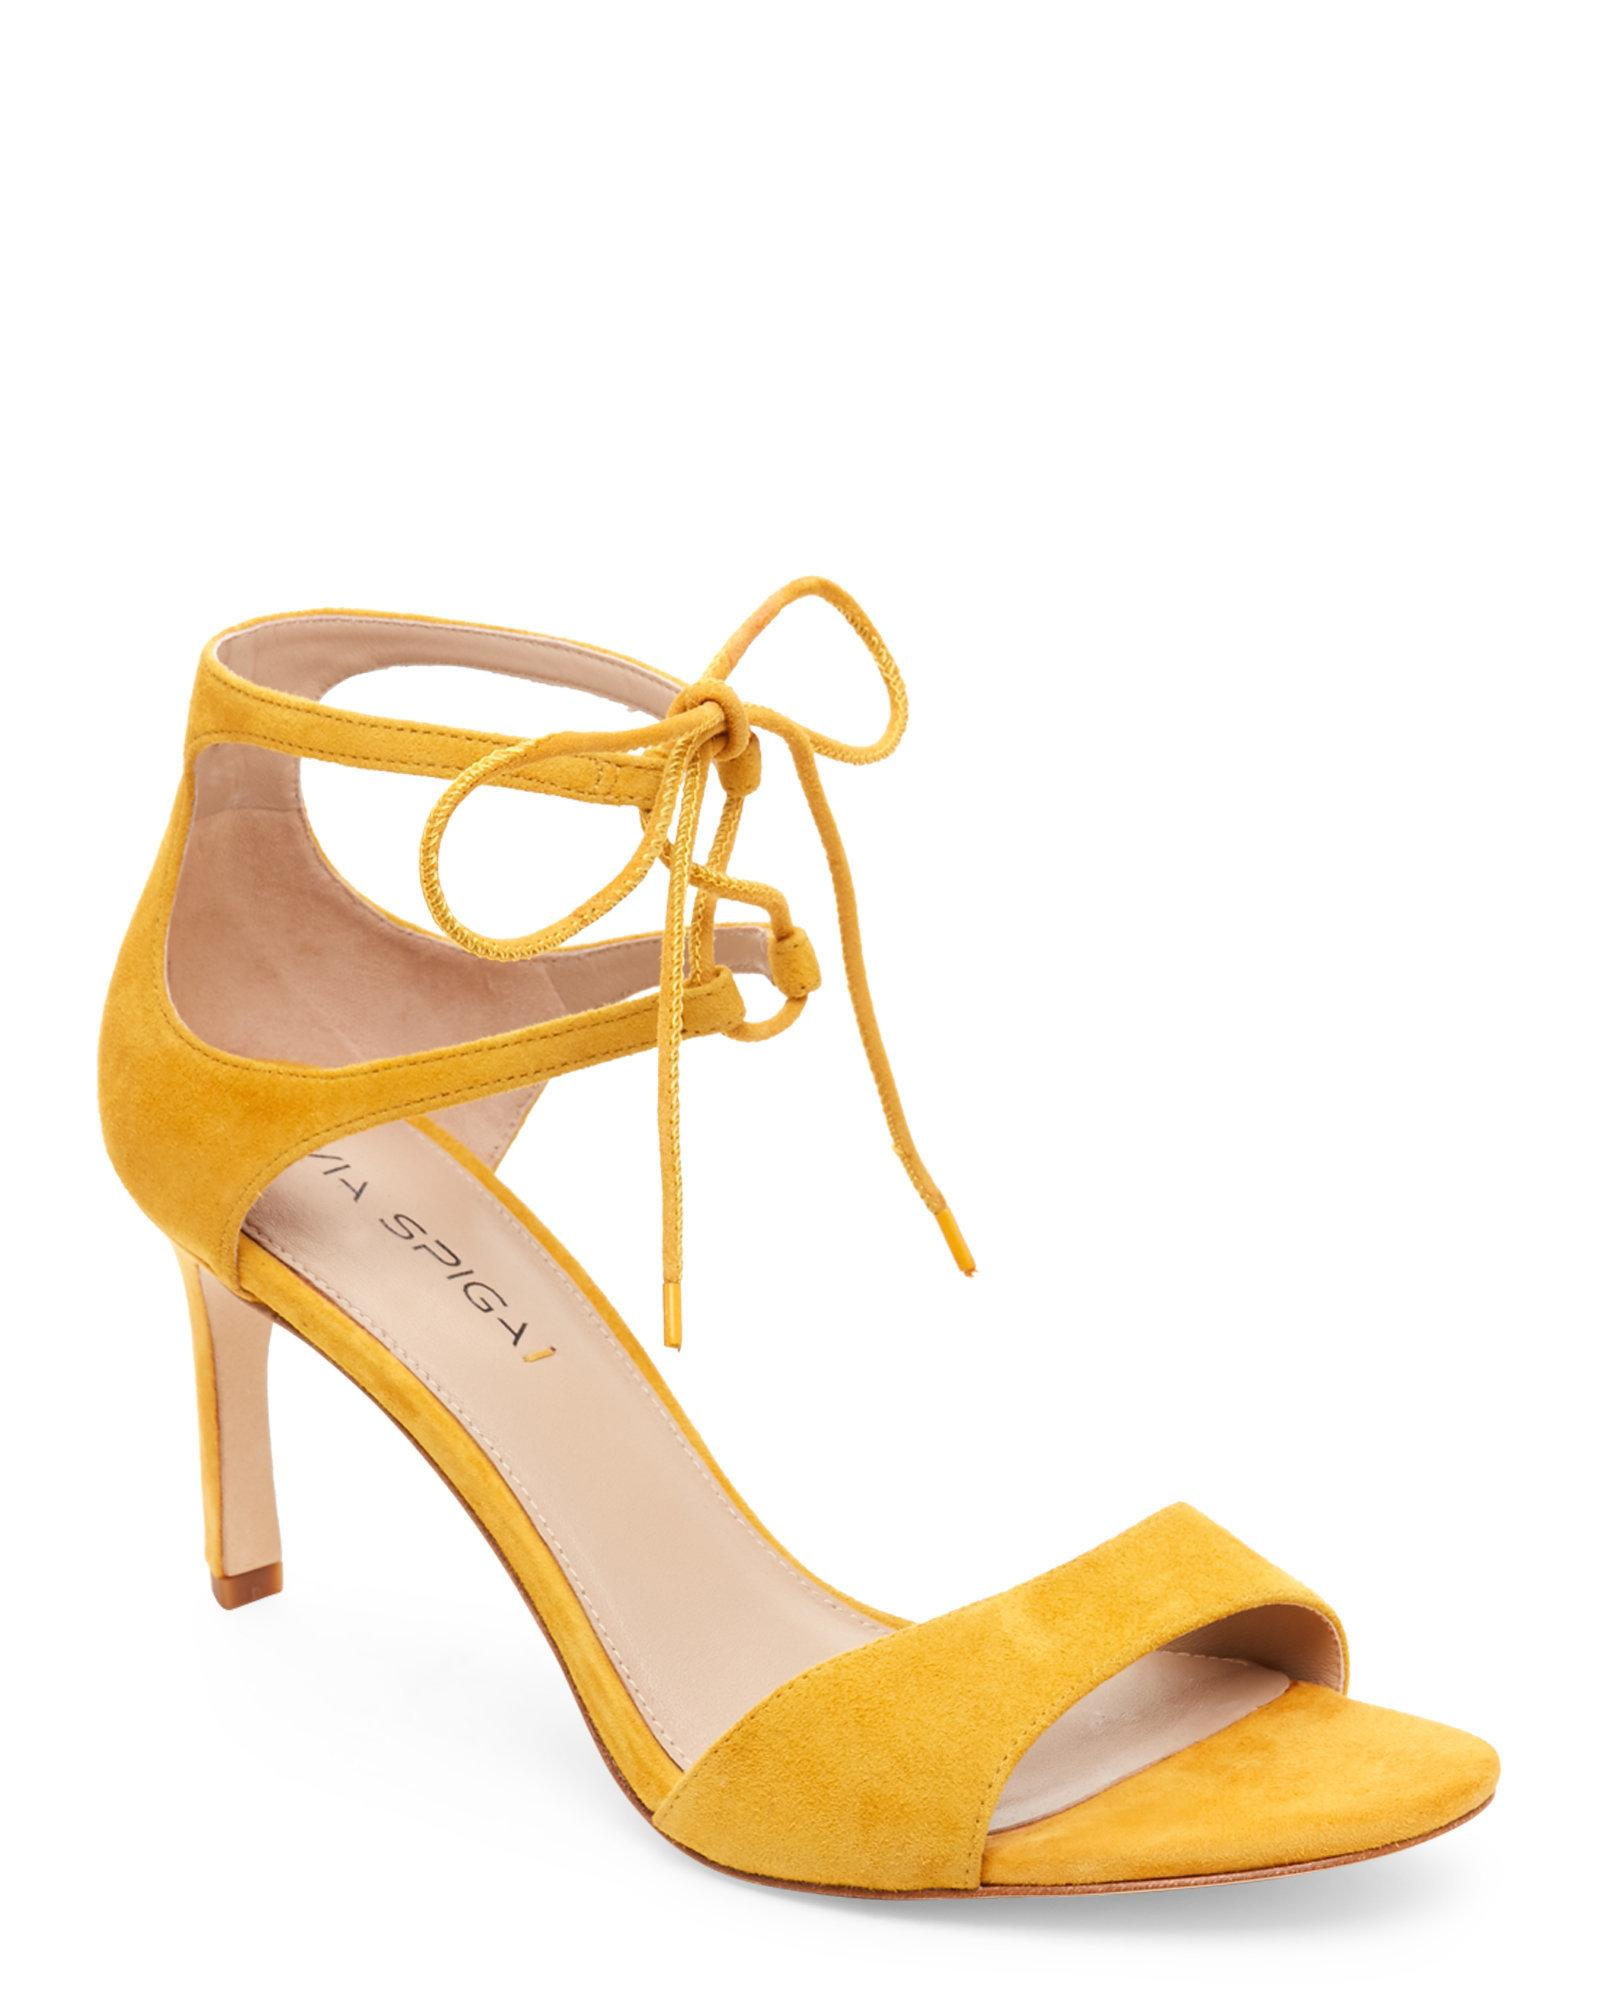 Sam Edelman Shoes Lace Up Yellow